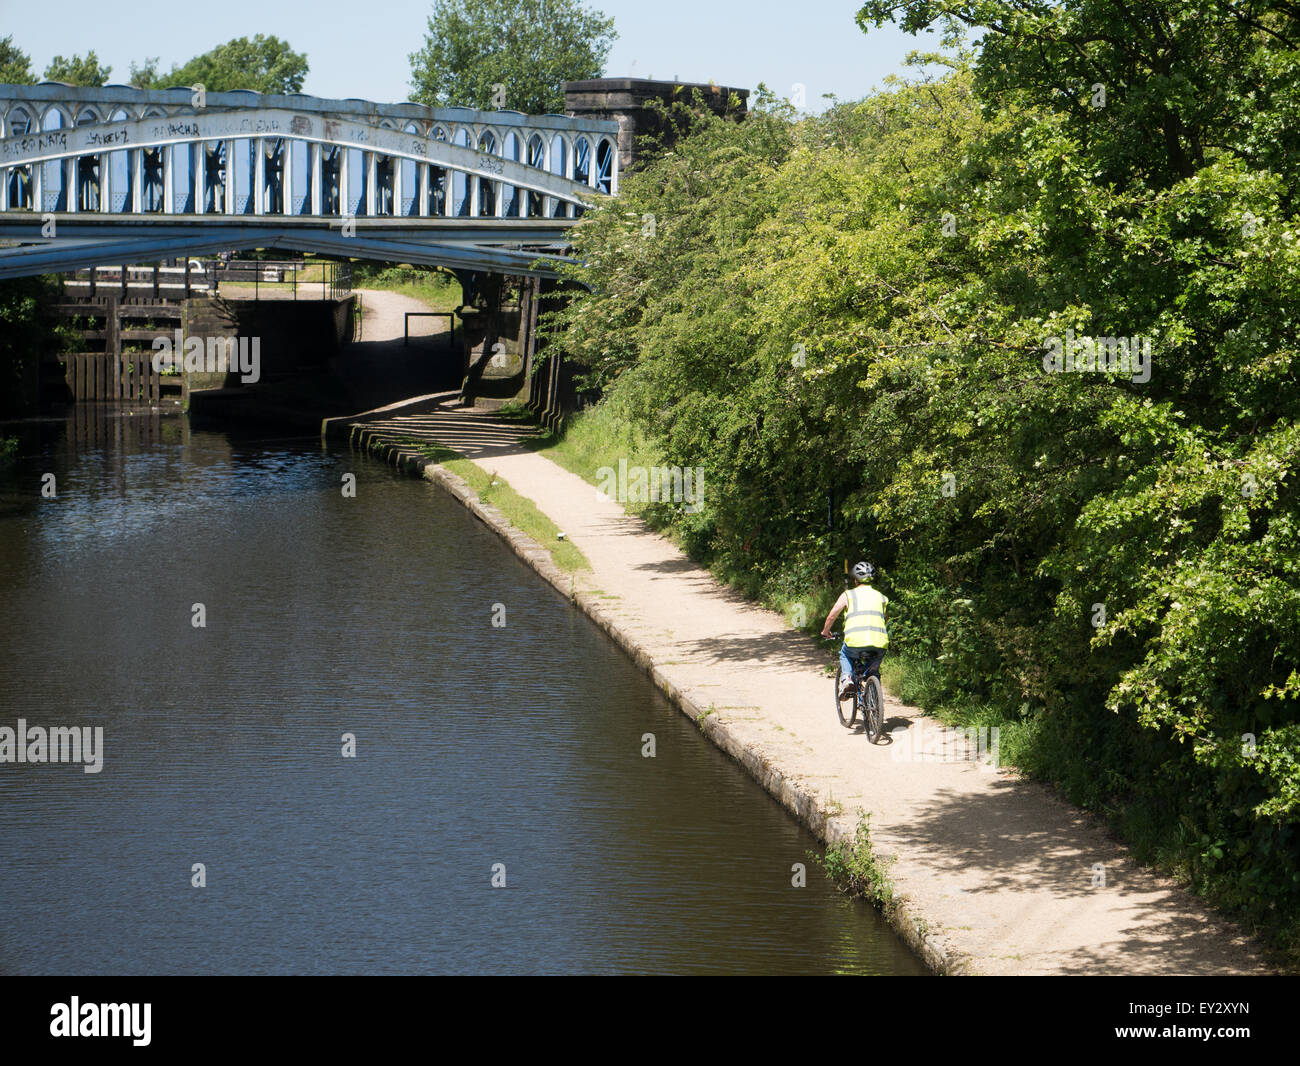 Cyclist on canal towpath - Stock Image